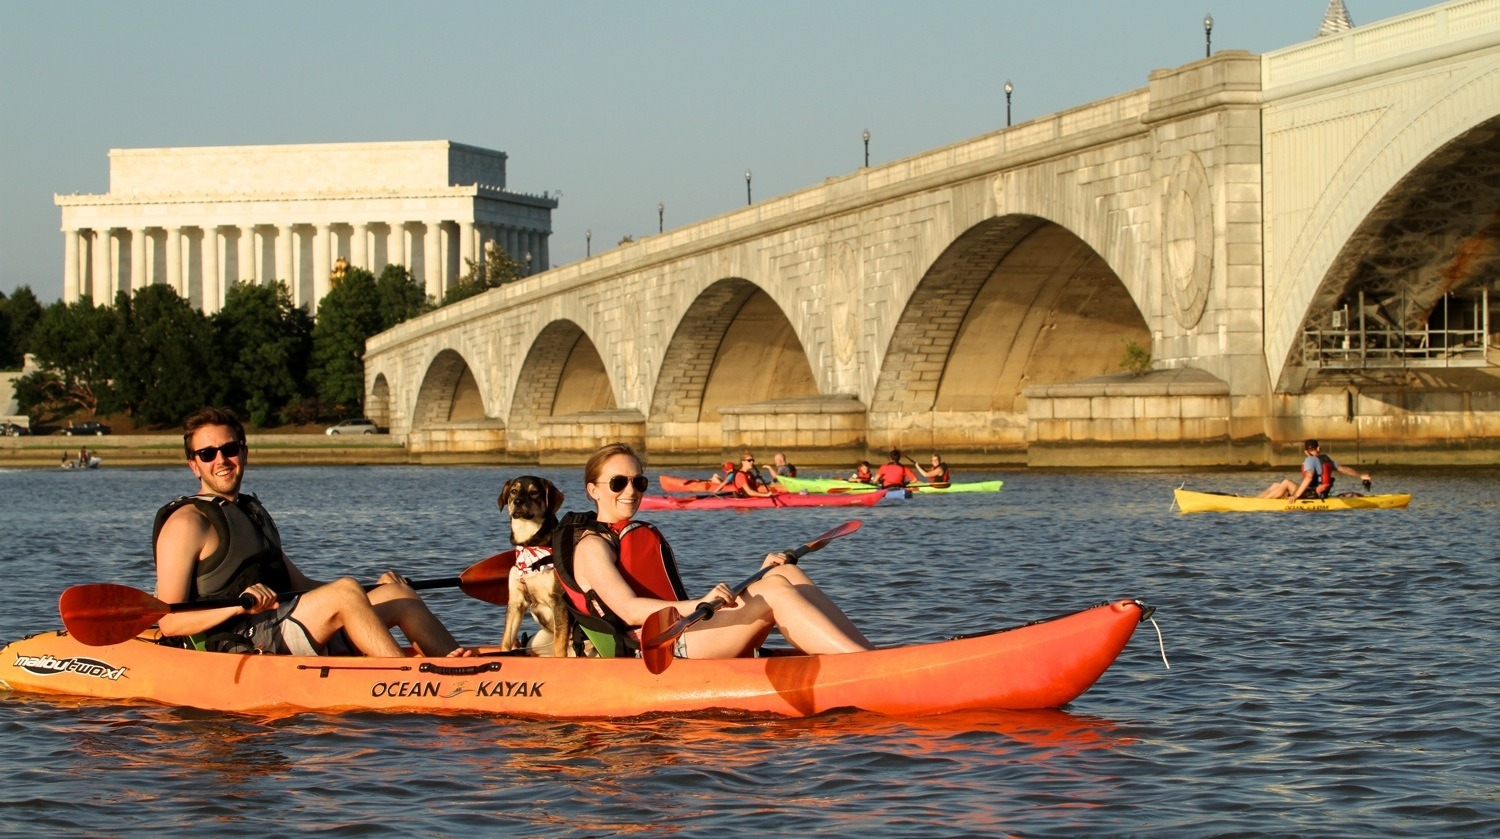 Rock the boat at Key Bridge Boathouse